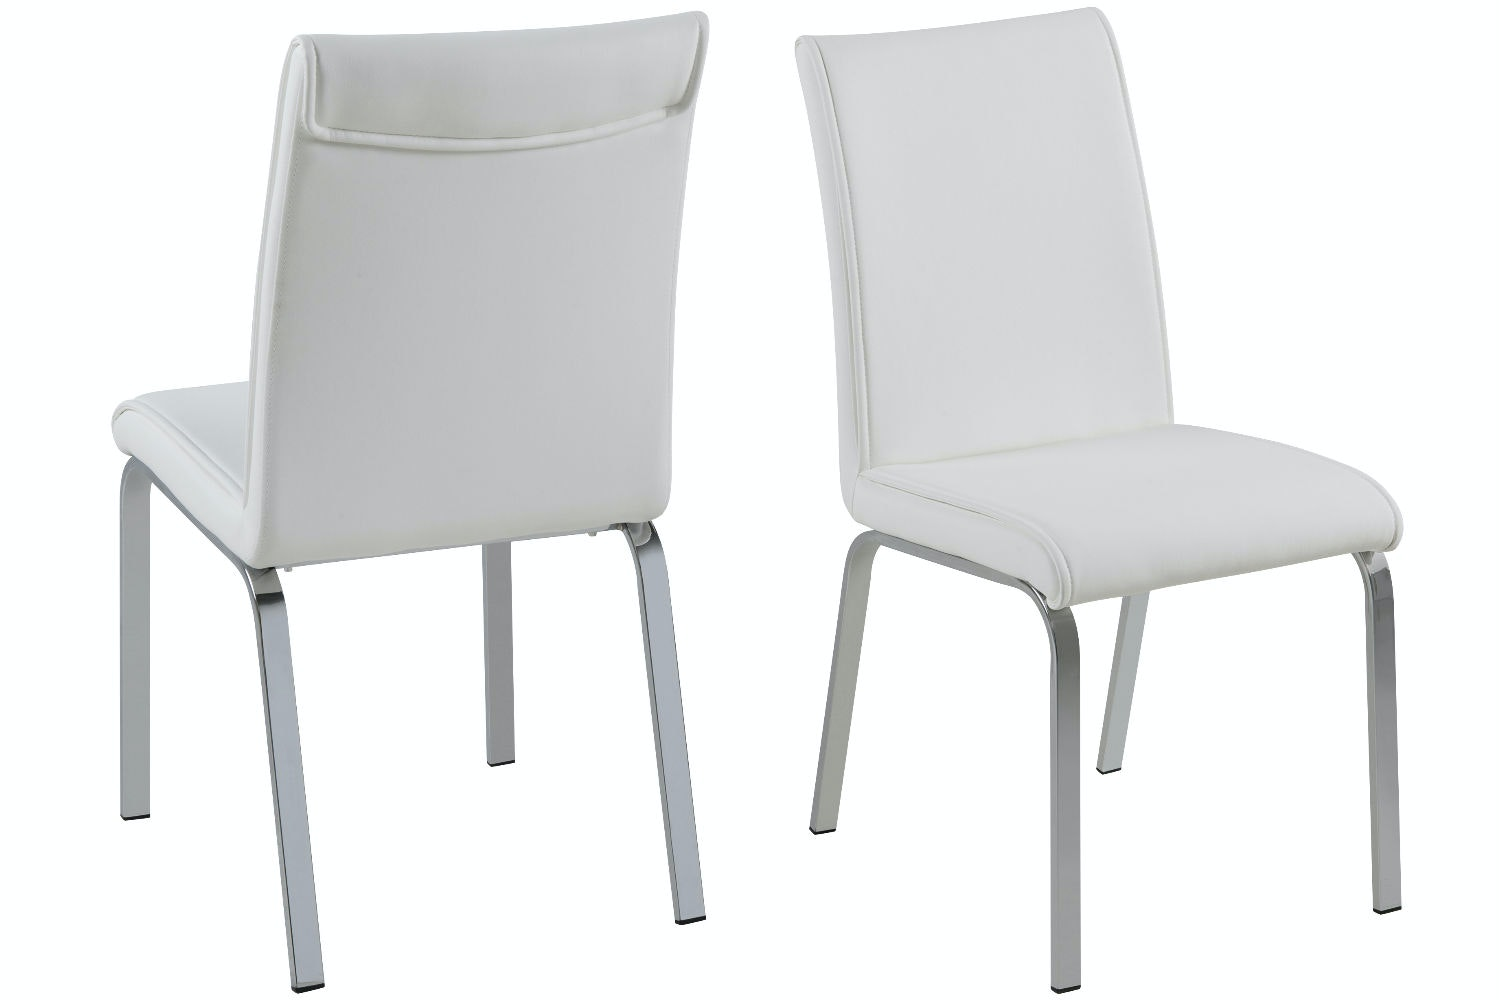 Lennox 7 Piece Dining Set | Leonora Dining Chairs White